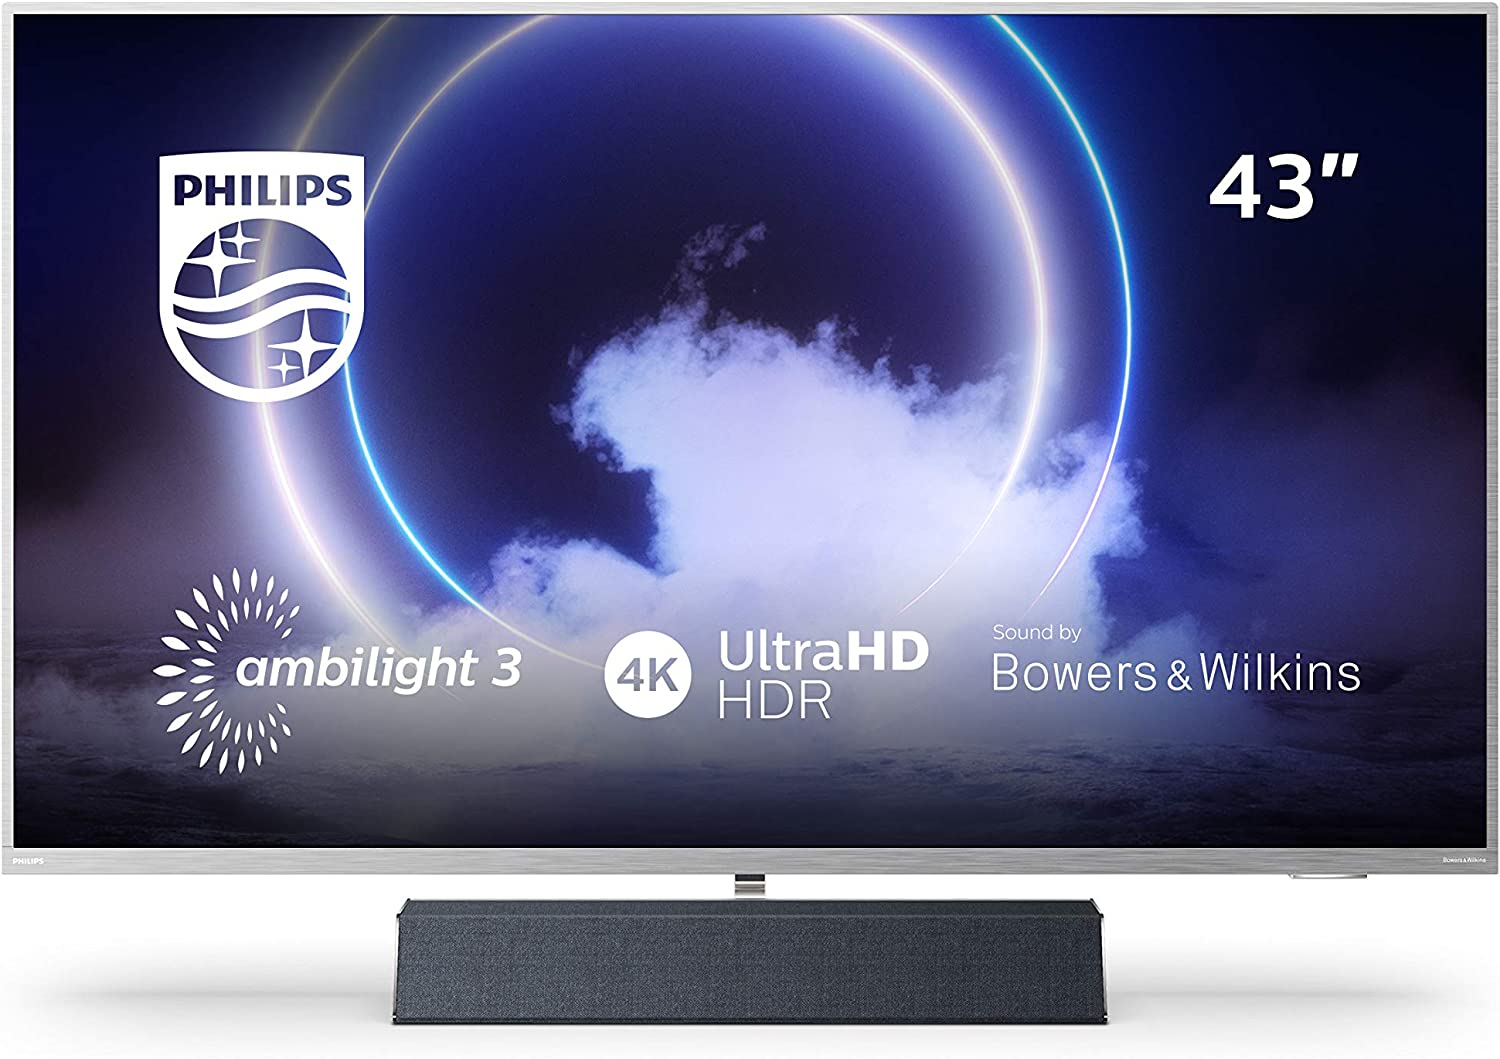 Philips Ambilight TV 43PUS9235/12 Smart TV 43 Pulgadas con Sonido de Bowers & Wilkins (P5 Engine, 4K UHD, Dolby Vision∙Atmos, Android TV, HDR 10+, ...